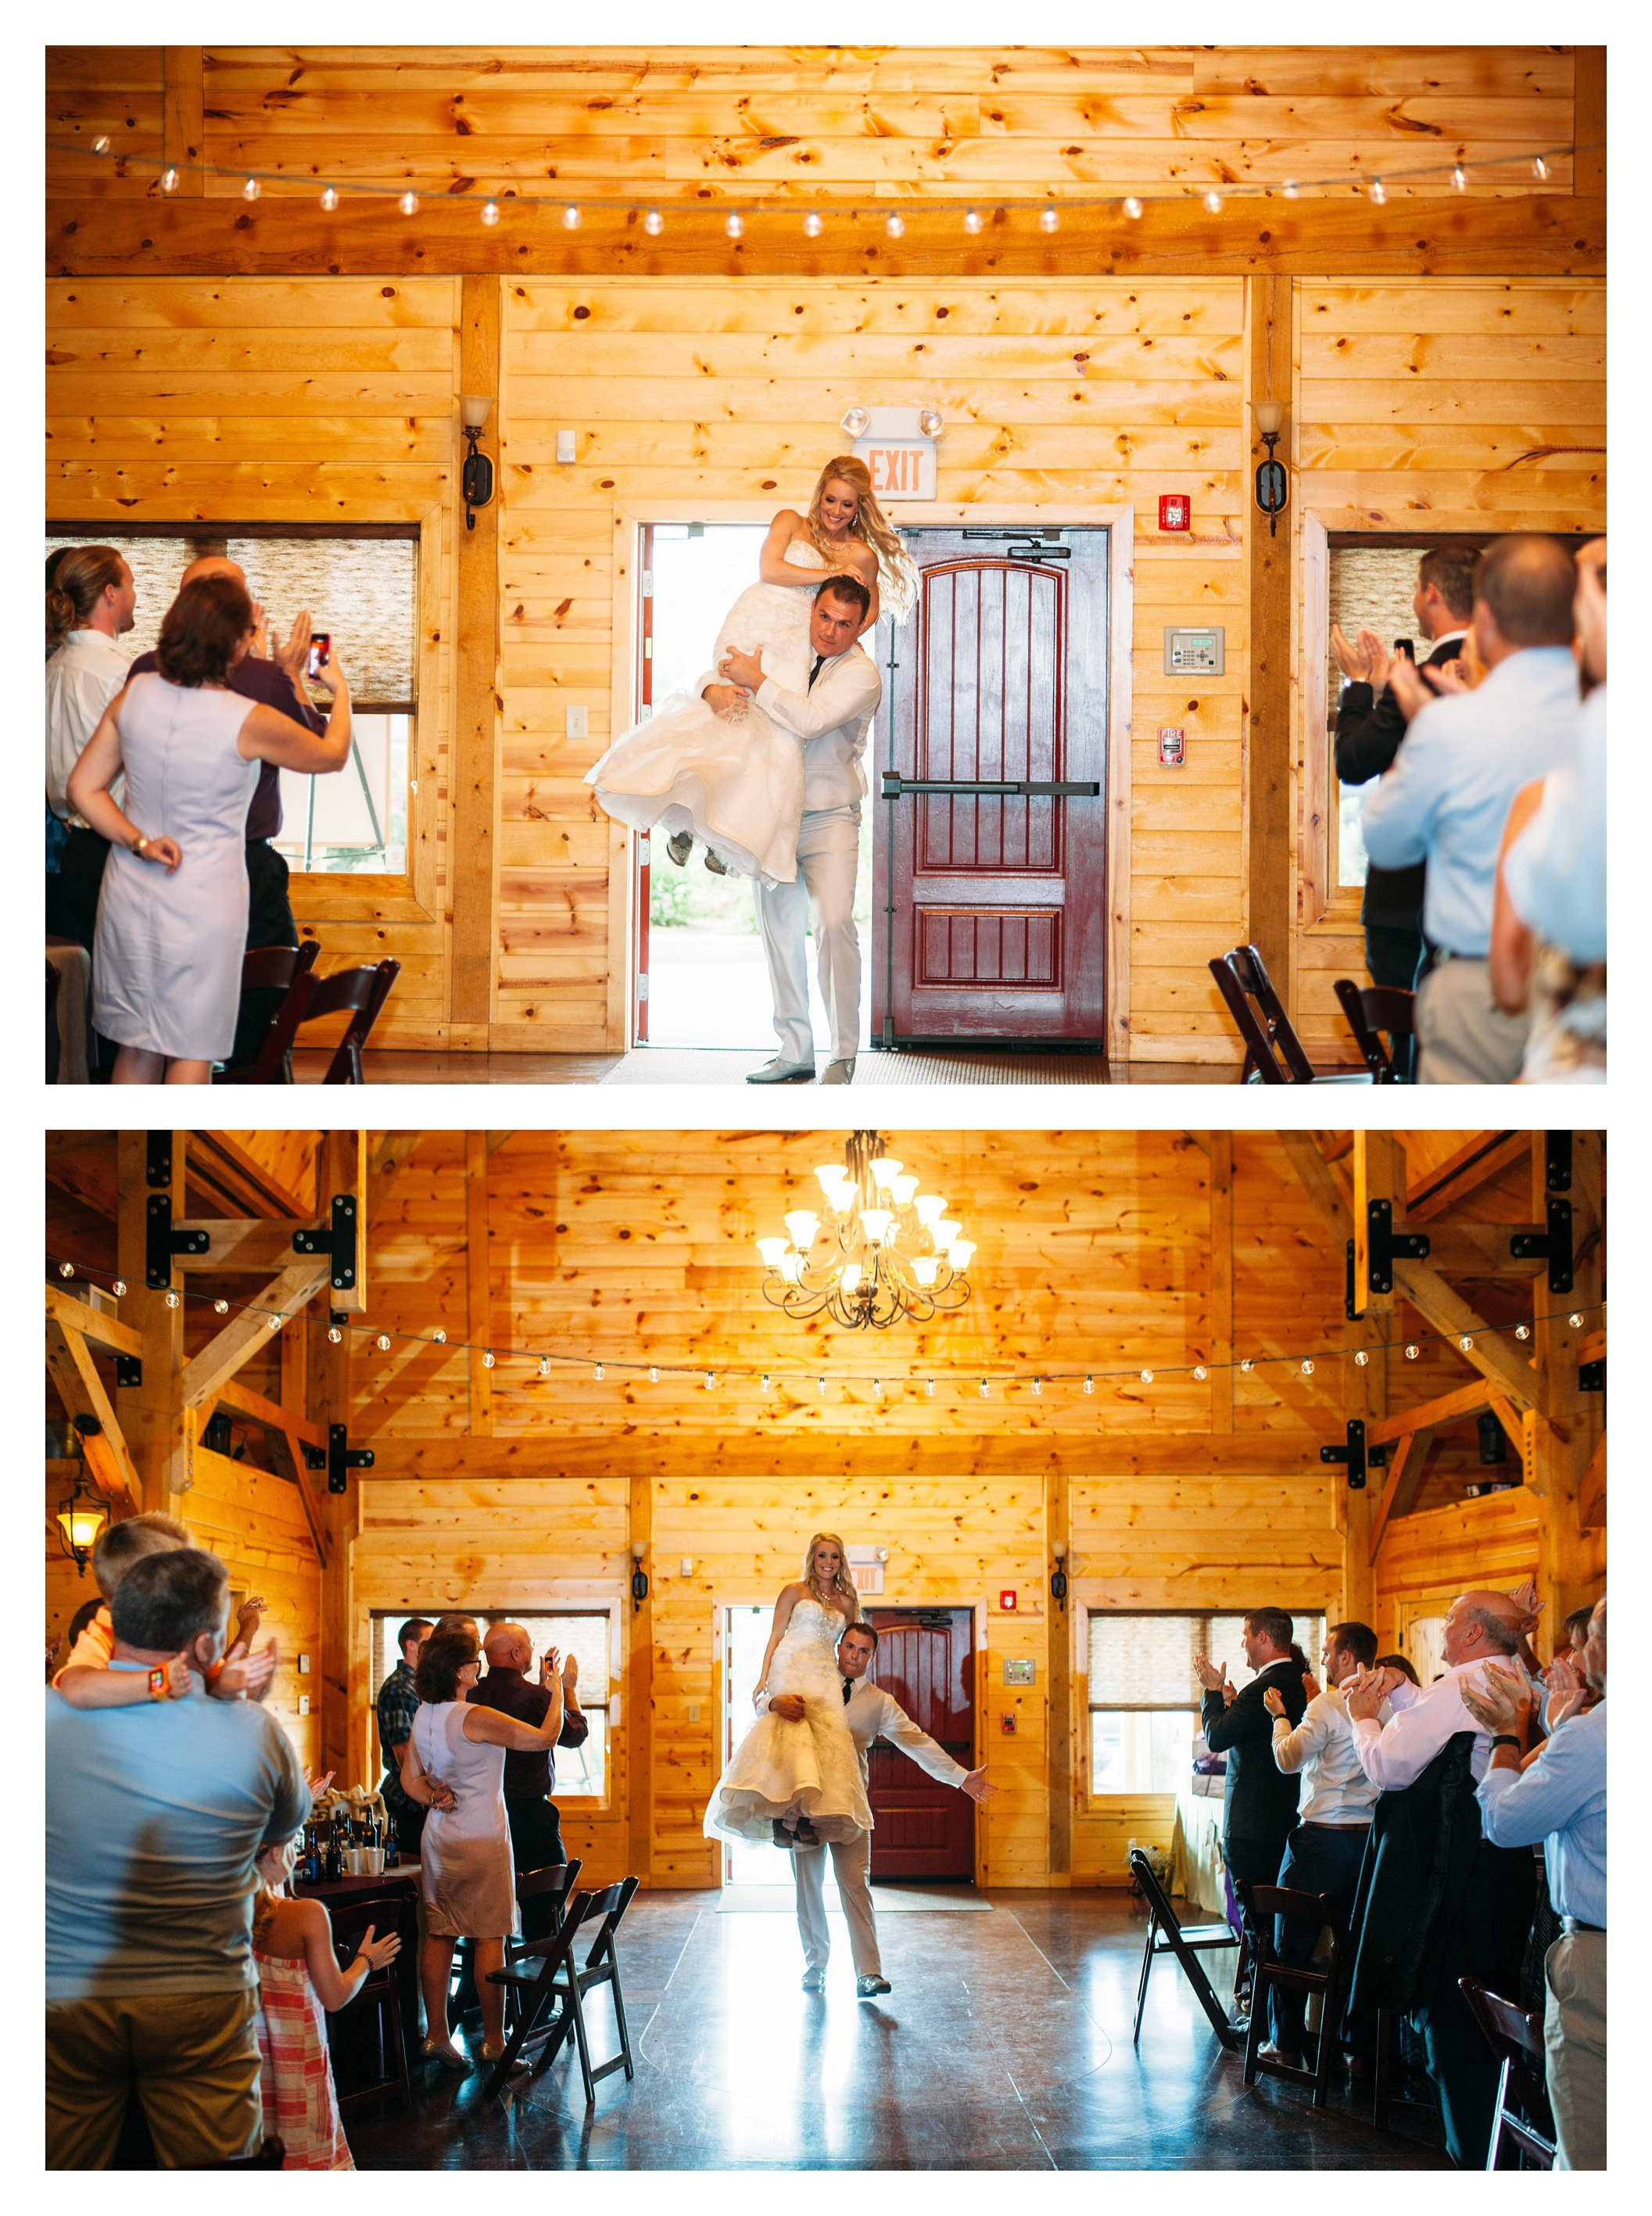 Dayton wedding photographer 3966